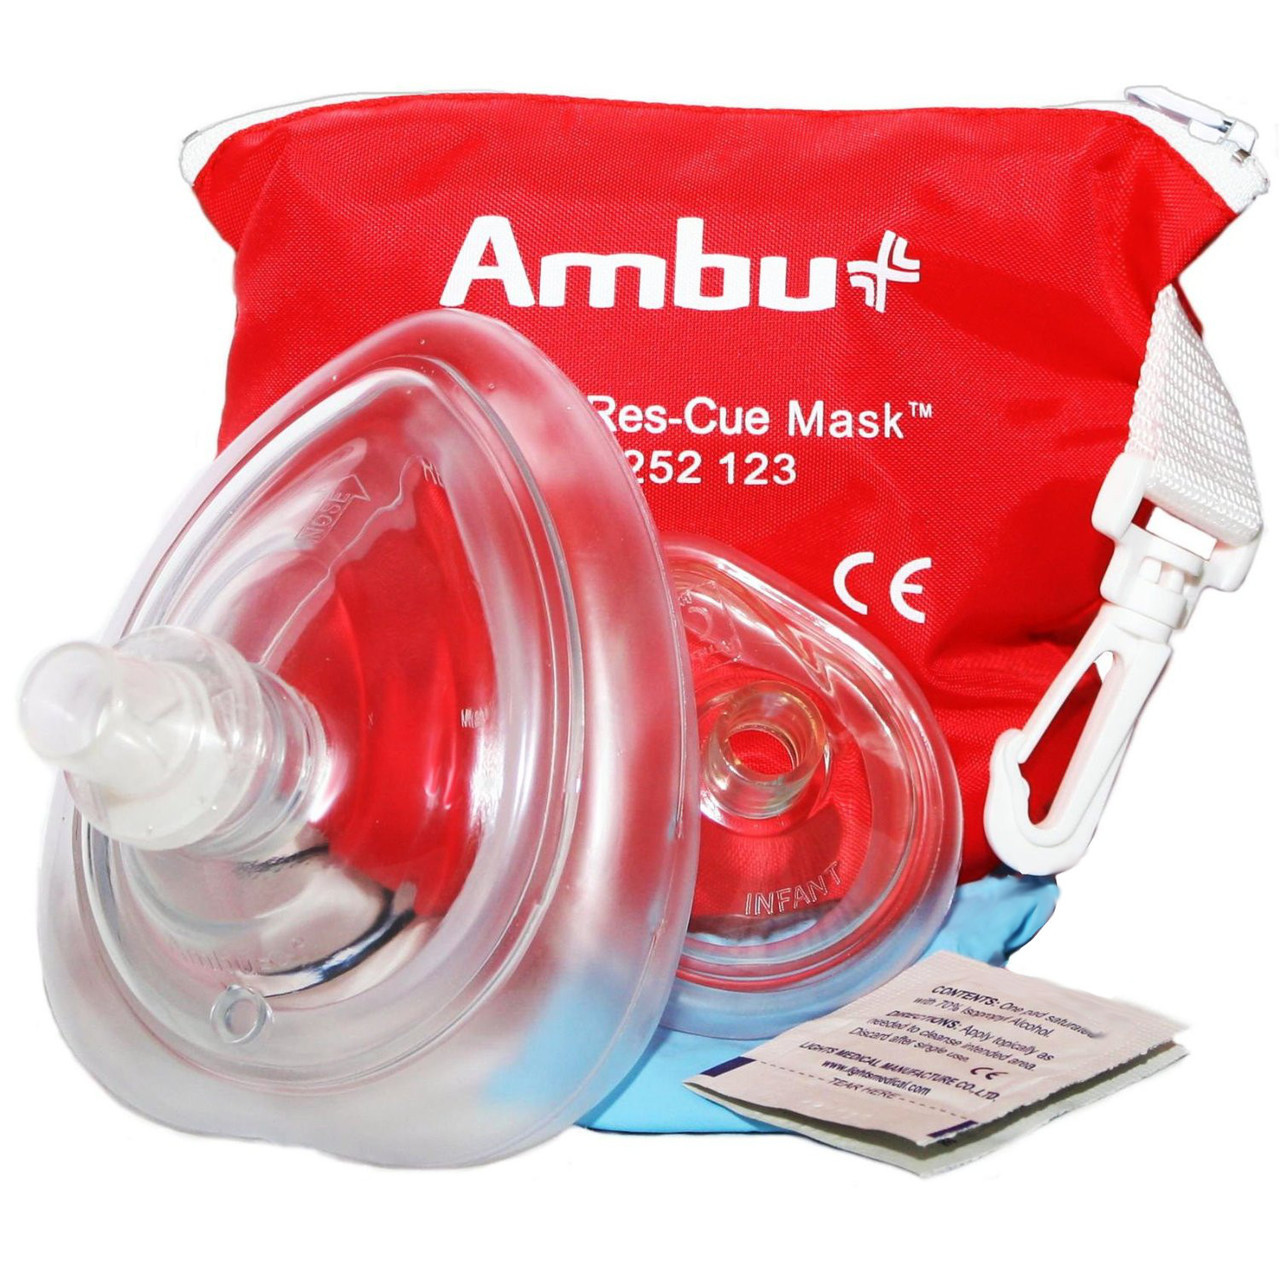 Adult and Infant CPR Mask in Soft Nylon Case